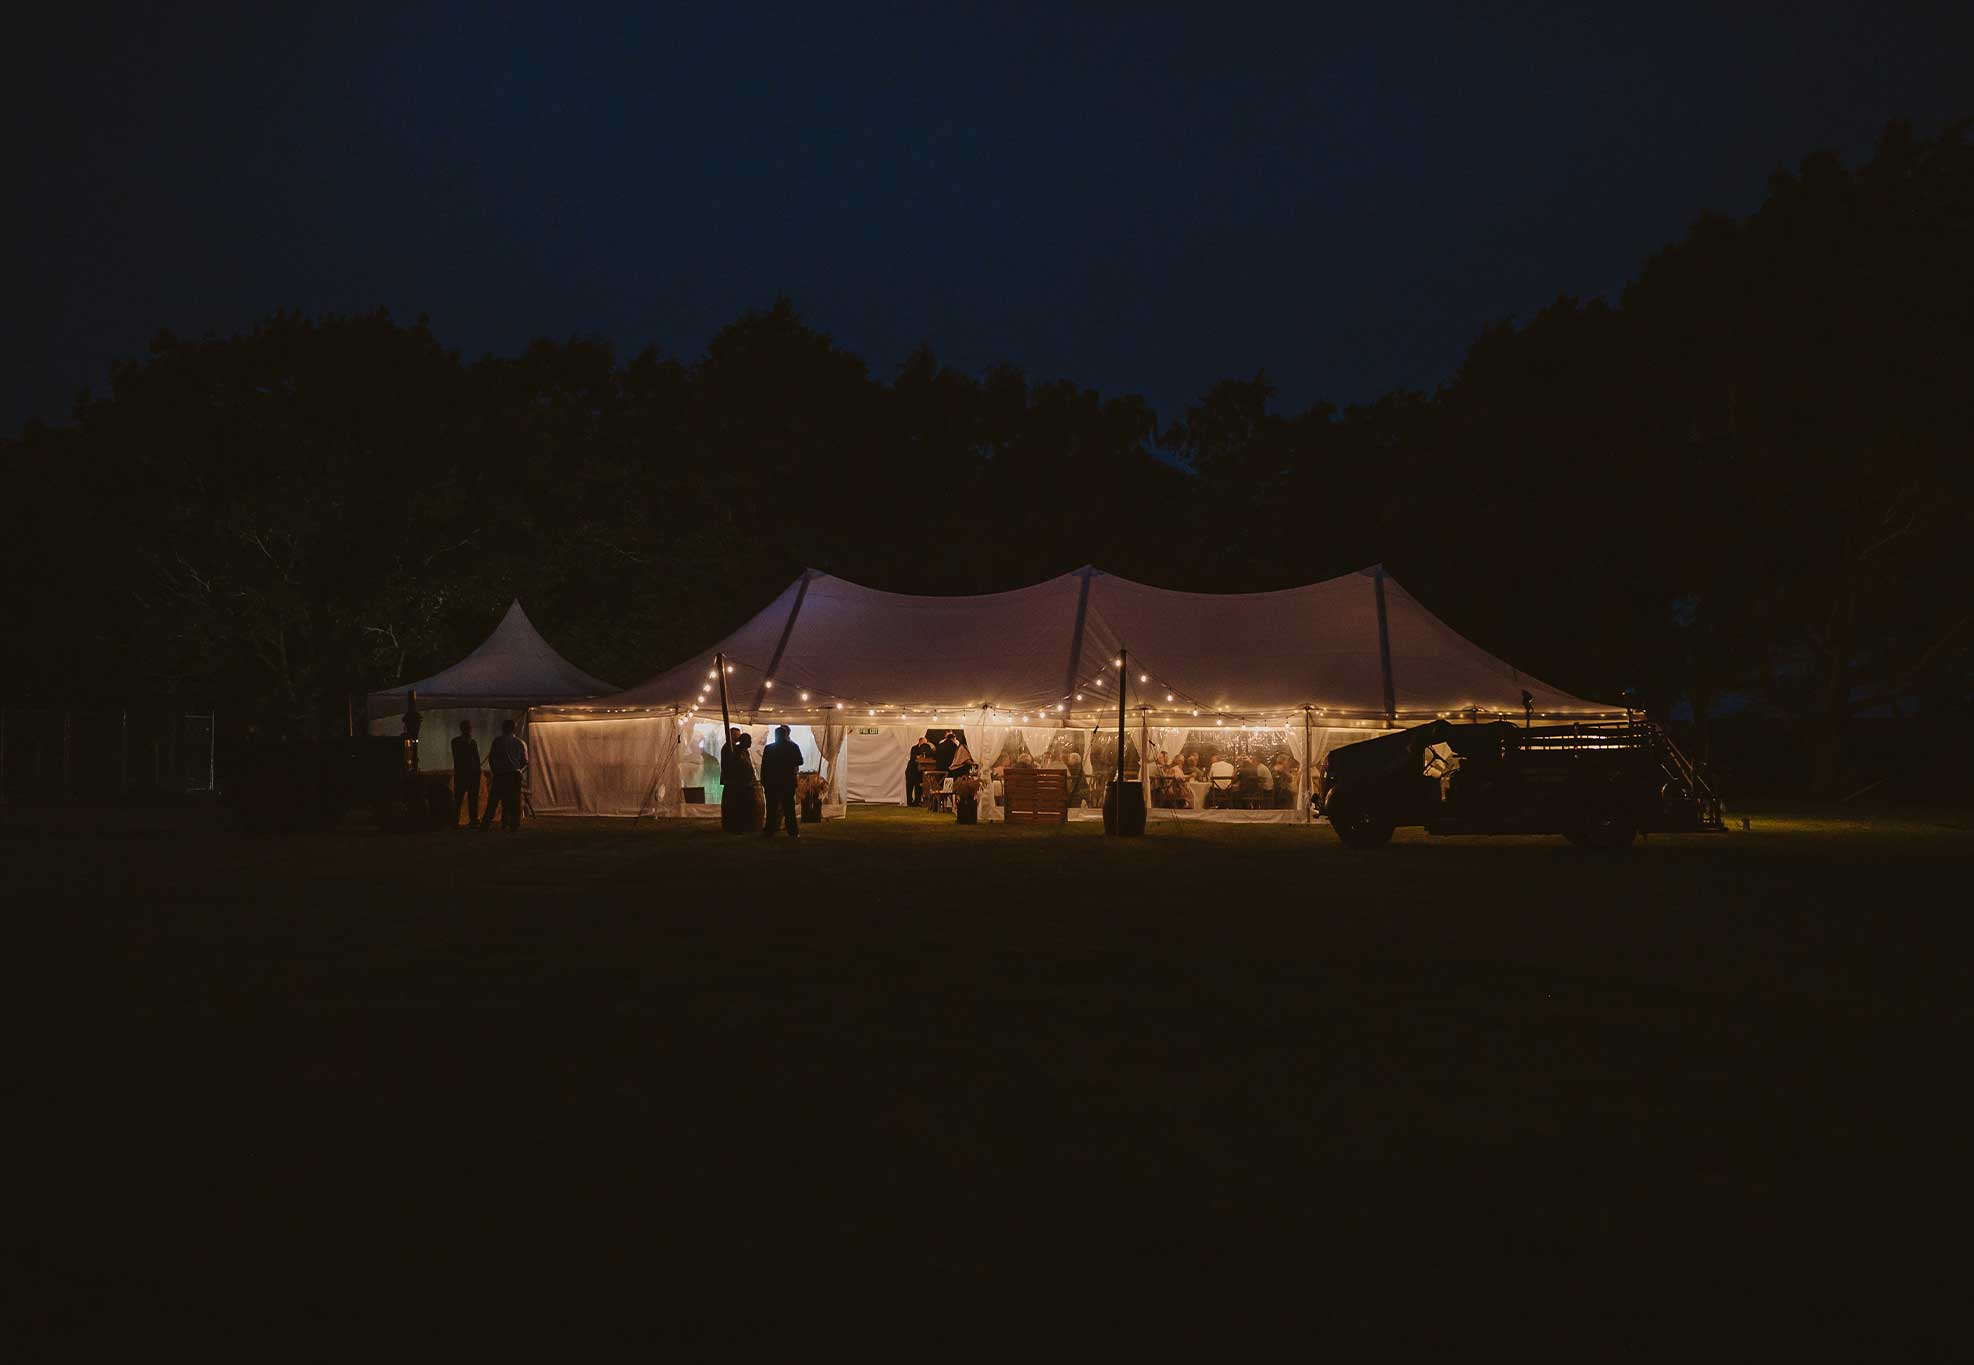 silk-estate-marquee-weddings-and-events-styling-and-hire-lightting-festoon-6